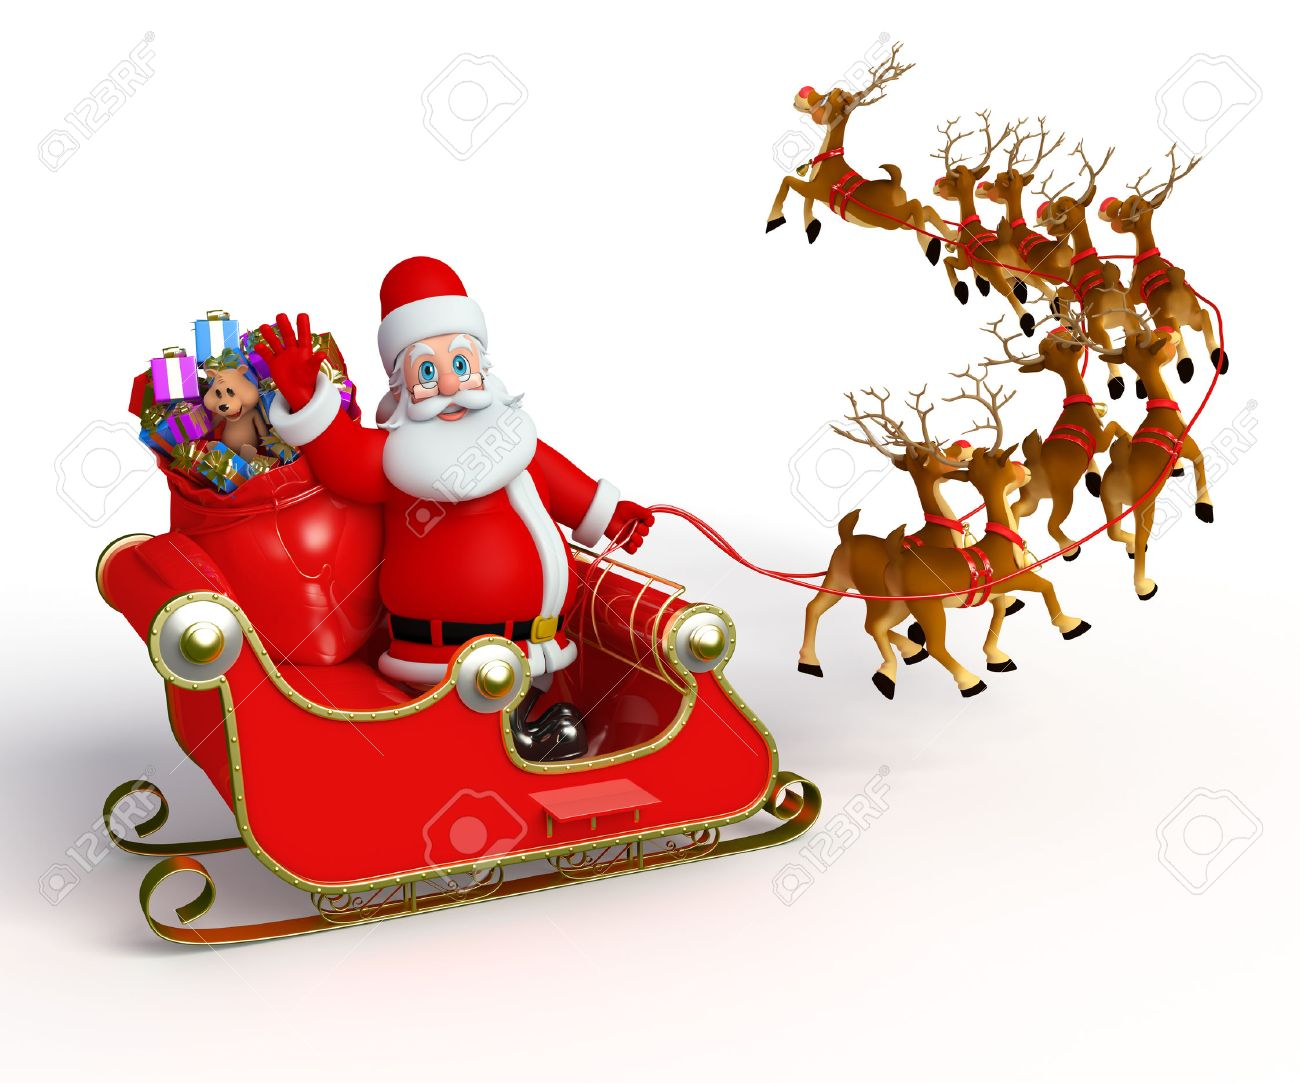 1300x1083 Santa With His Sleigh Stock Photo, Picture And Royalty Free Image